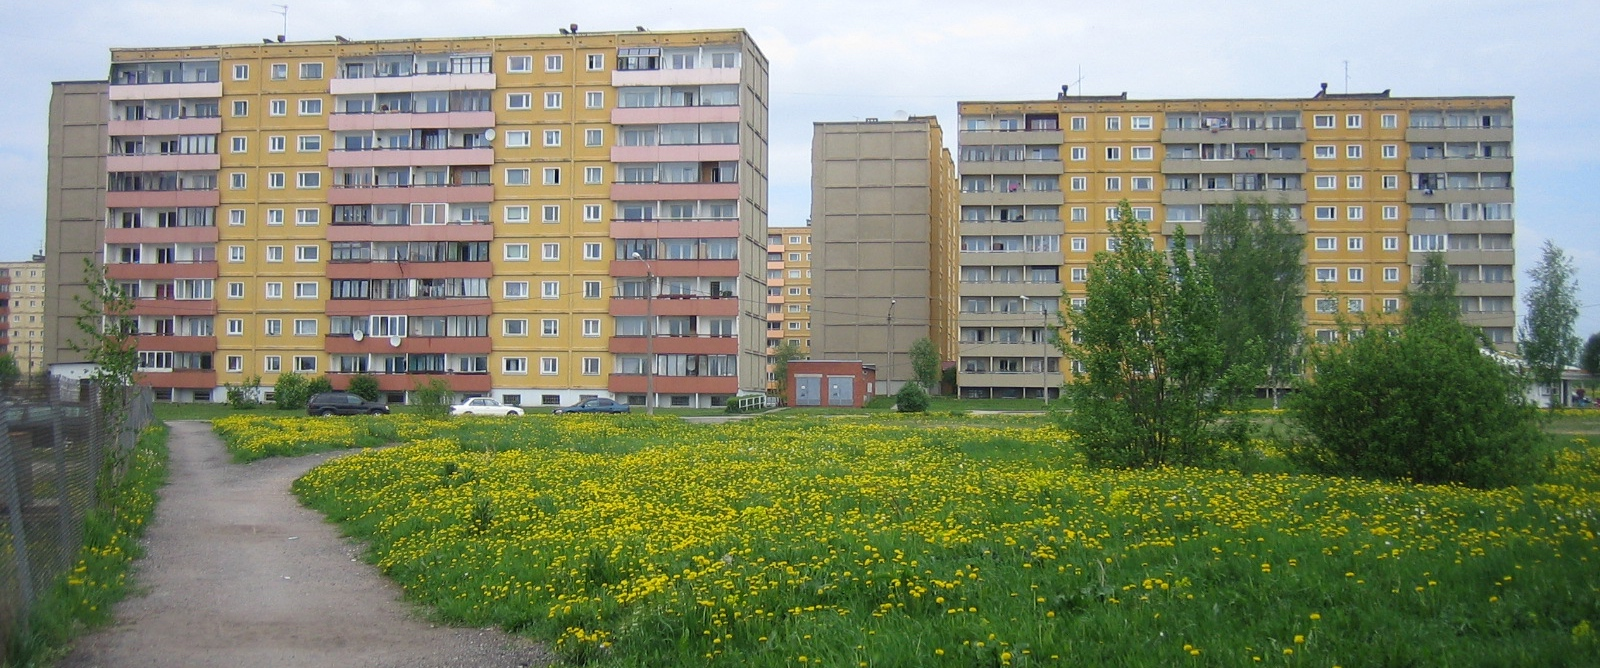 An old Soviet bloc in Tartu, Estonia. Typically, this part of town is still mostly populated by ethnic Russians.